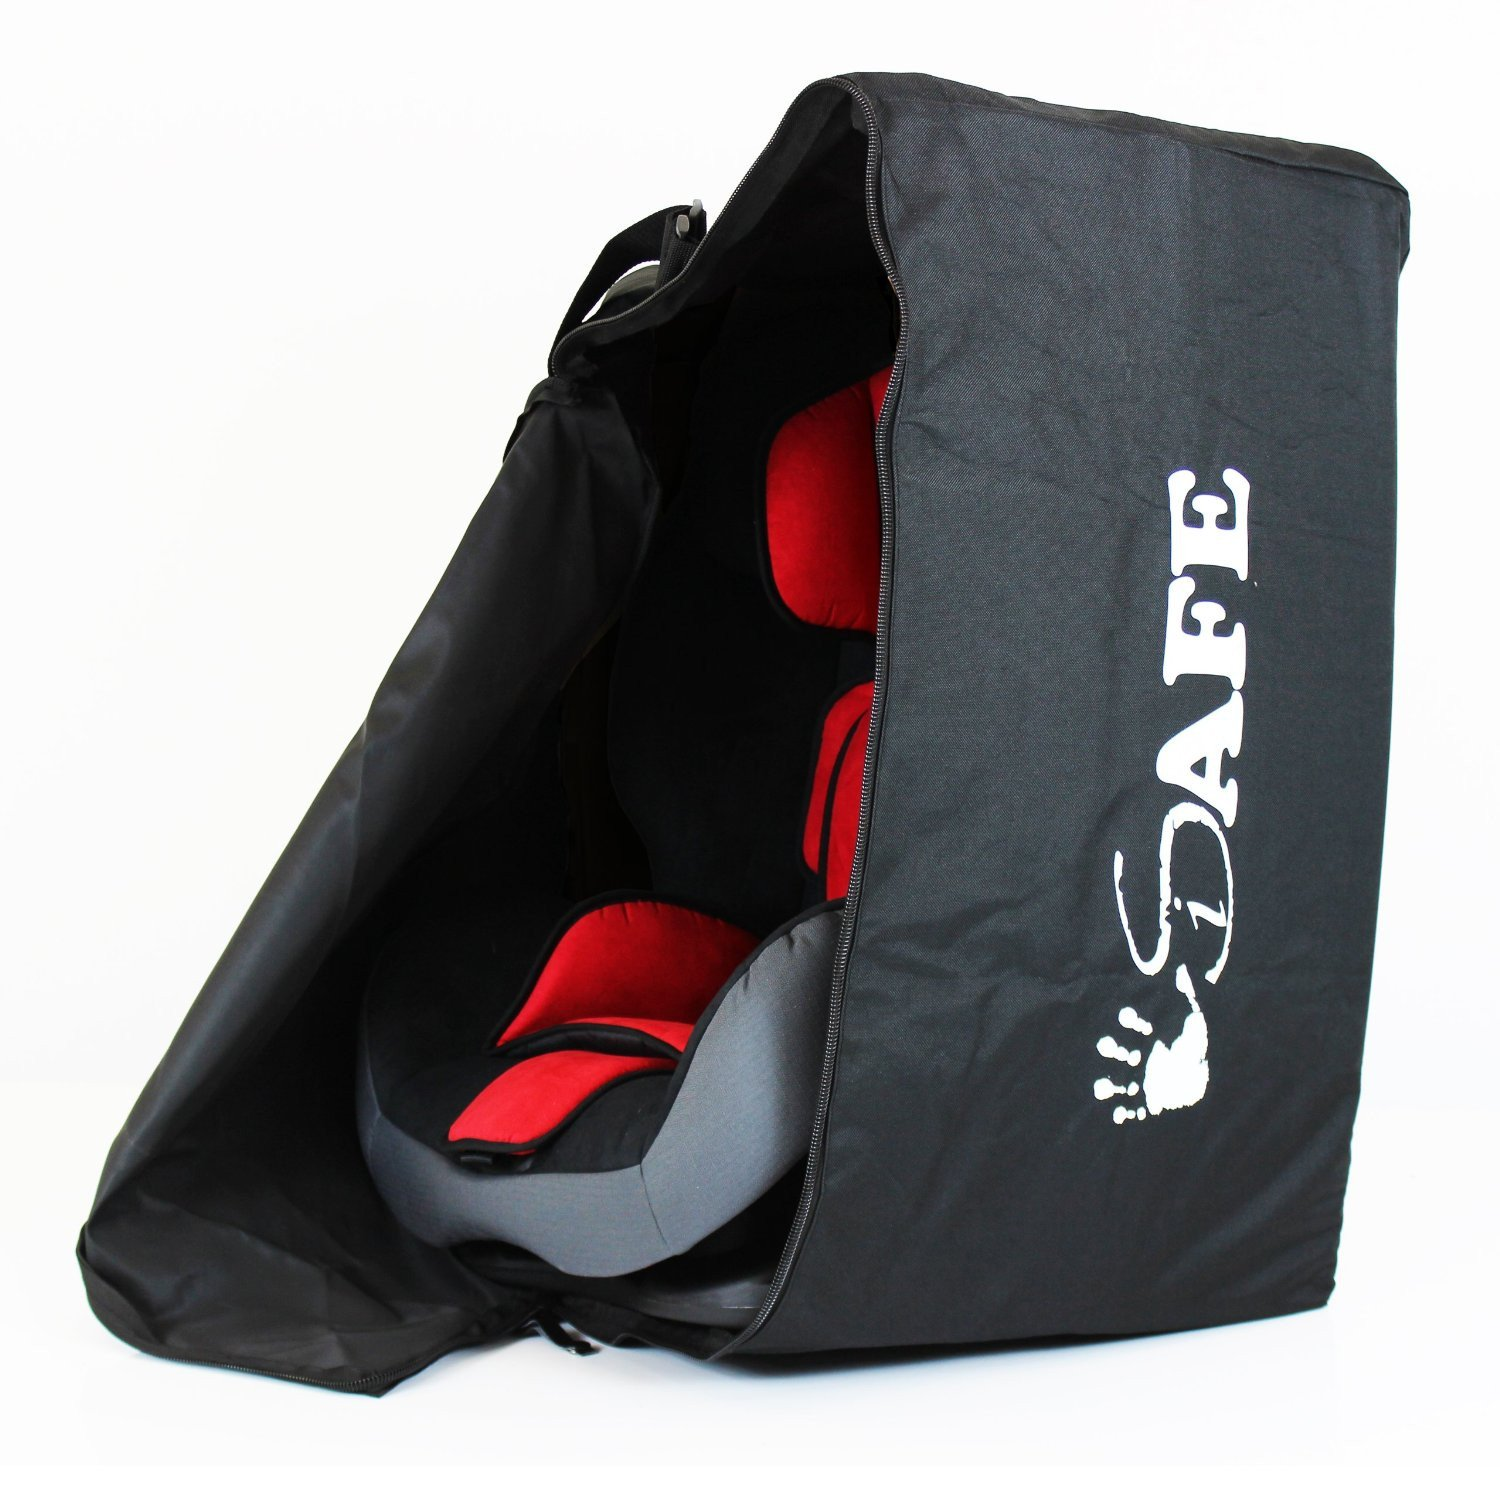 ISafe Universal Car Seat Travel Bag For Maxi Cosi